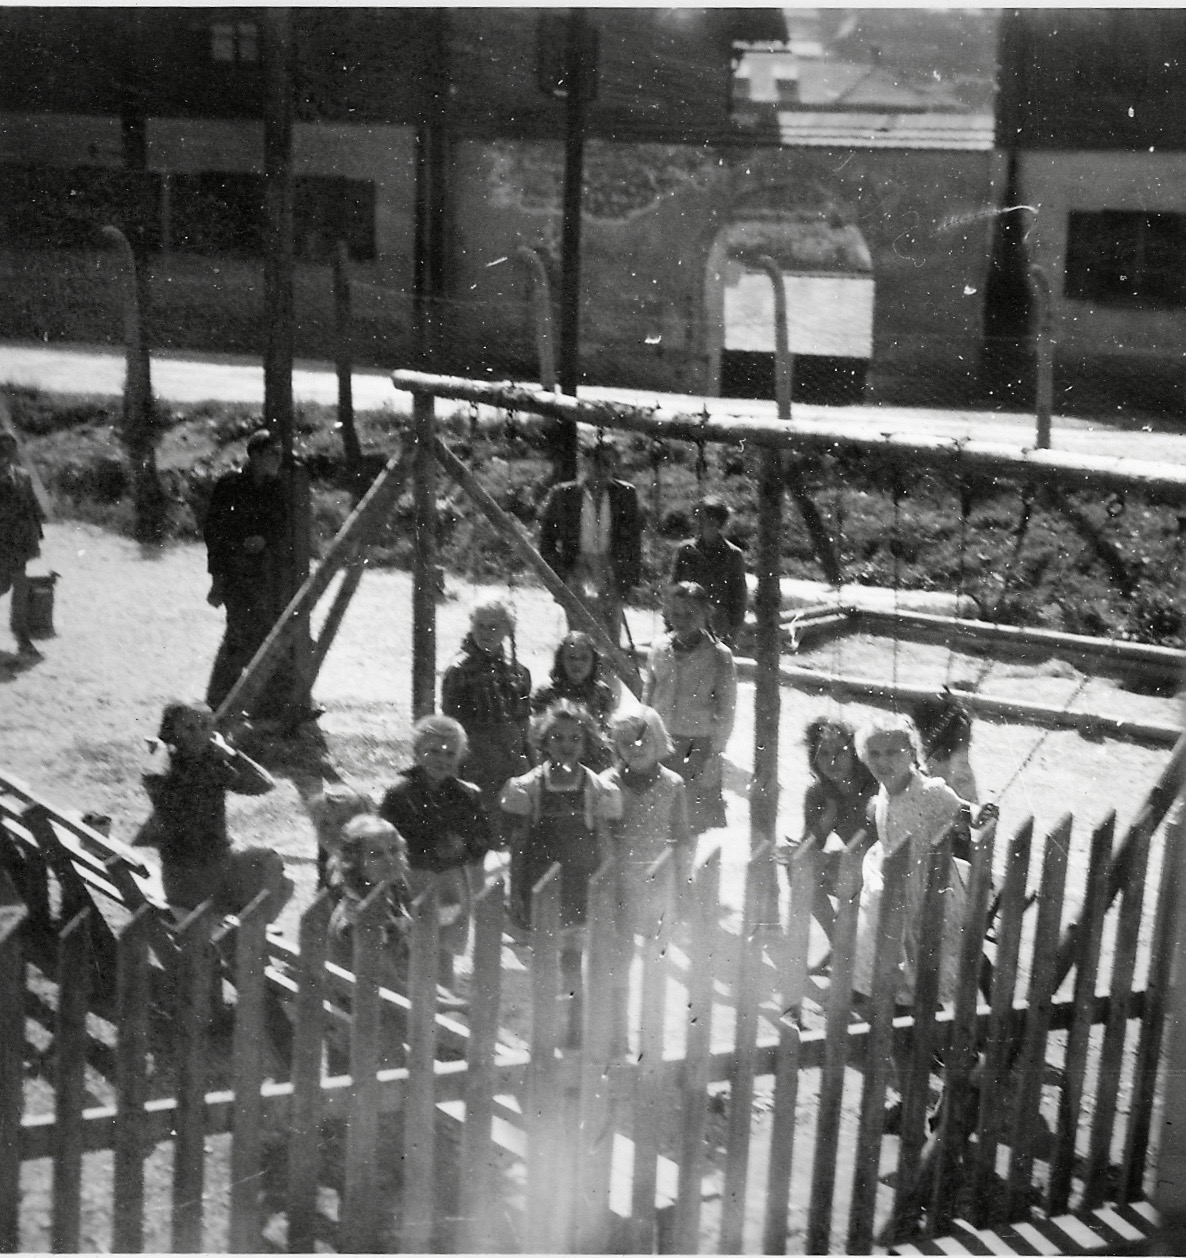 Eisenerz camp 64, view from office window, 1948